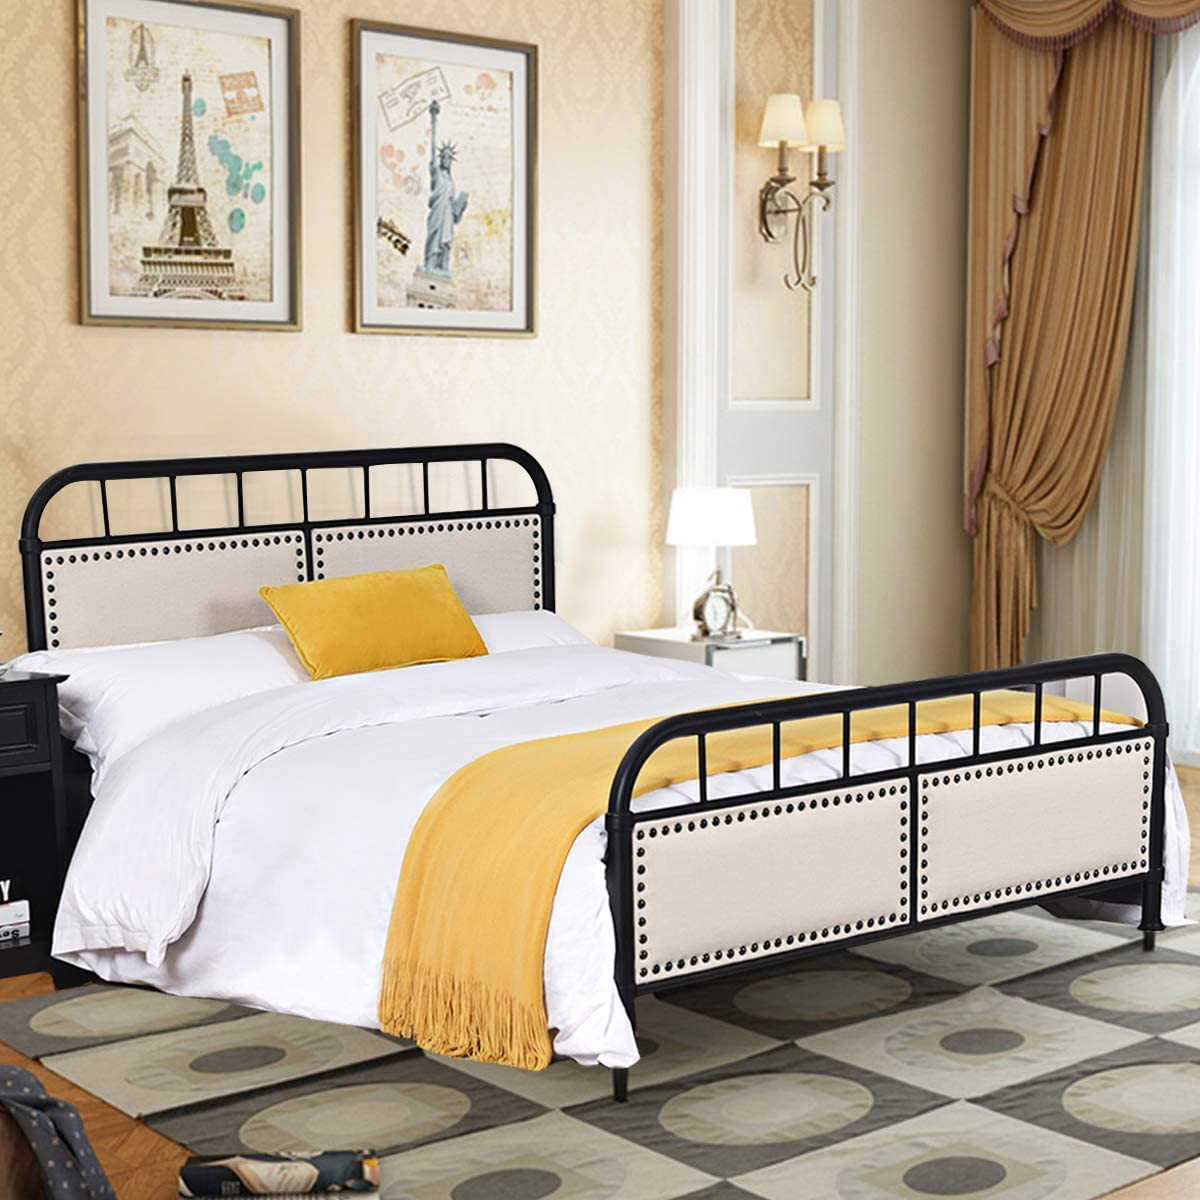 Giantex Metal Bed Platform Frame with Comfortable Upholstered Headboard and Footboard, Solid Design and Vintage Style, for Mattress Foundation Black